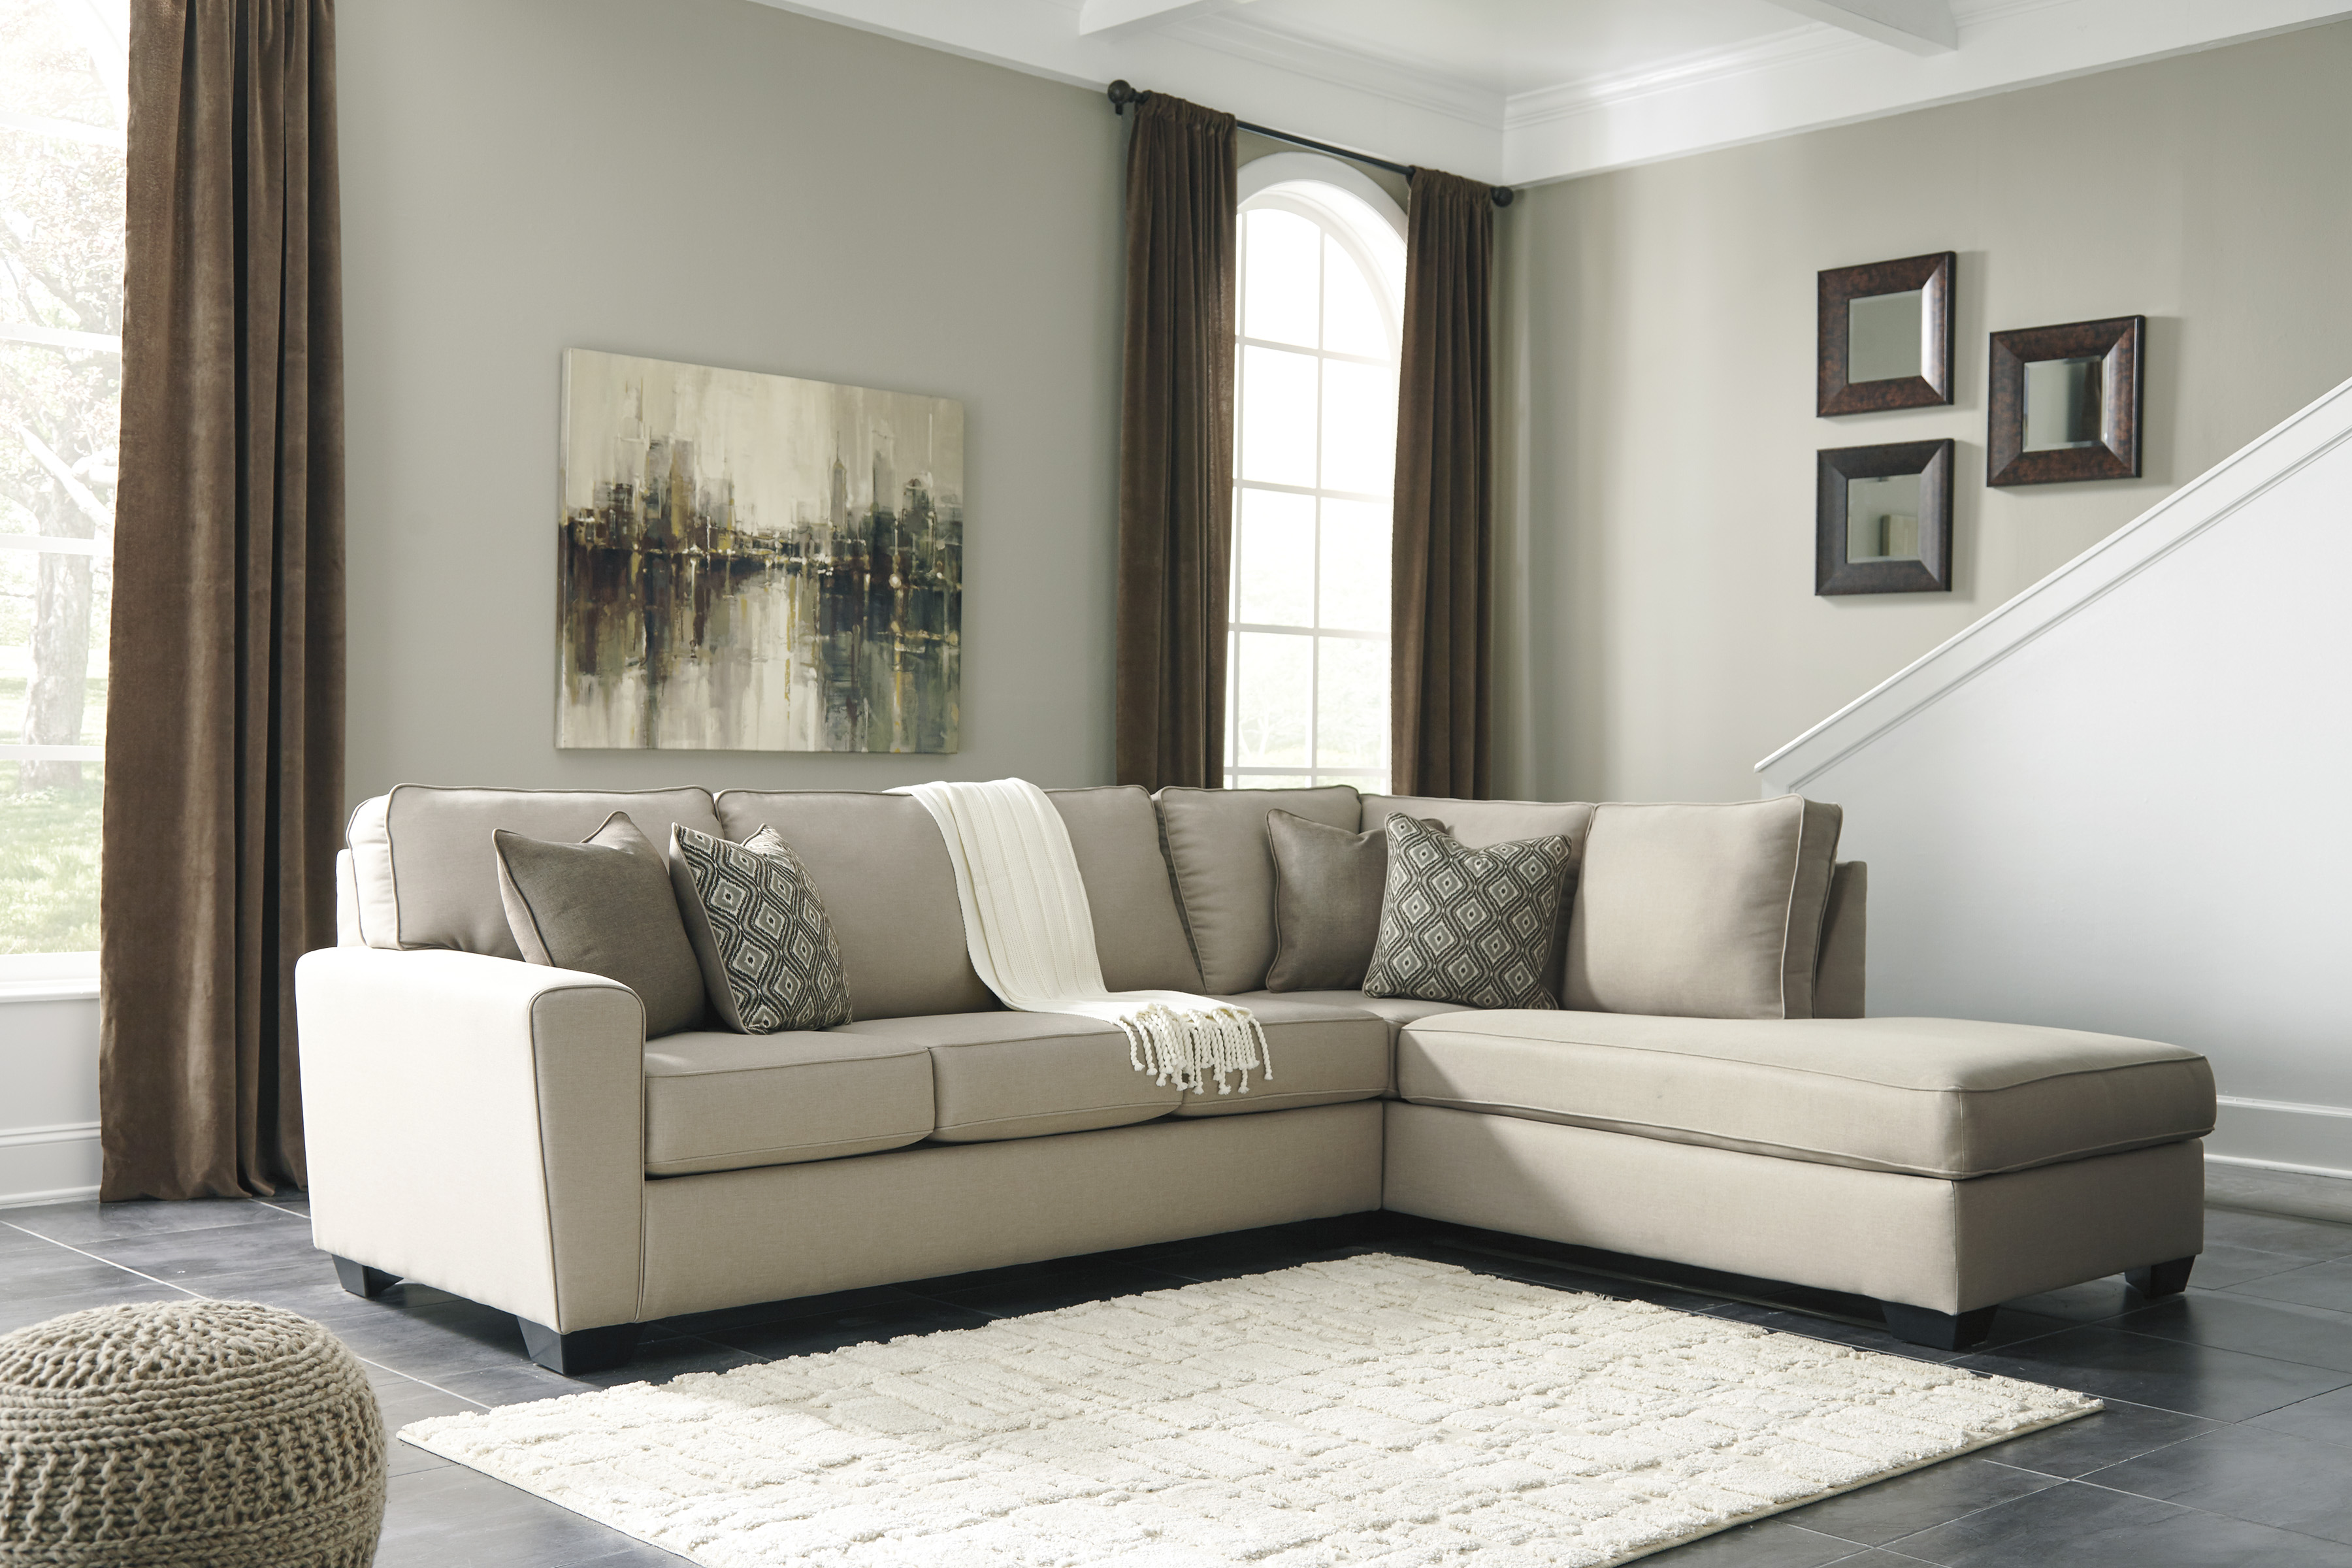 Calicho Charcoal Sectional by Ashley 17 wide tapered arms